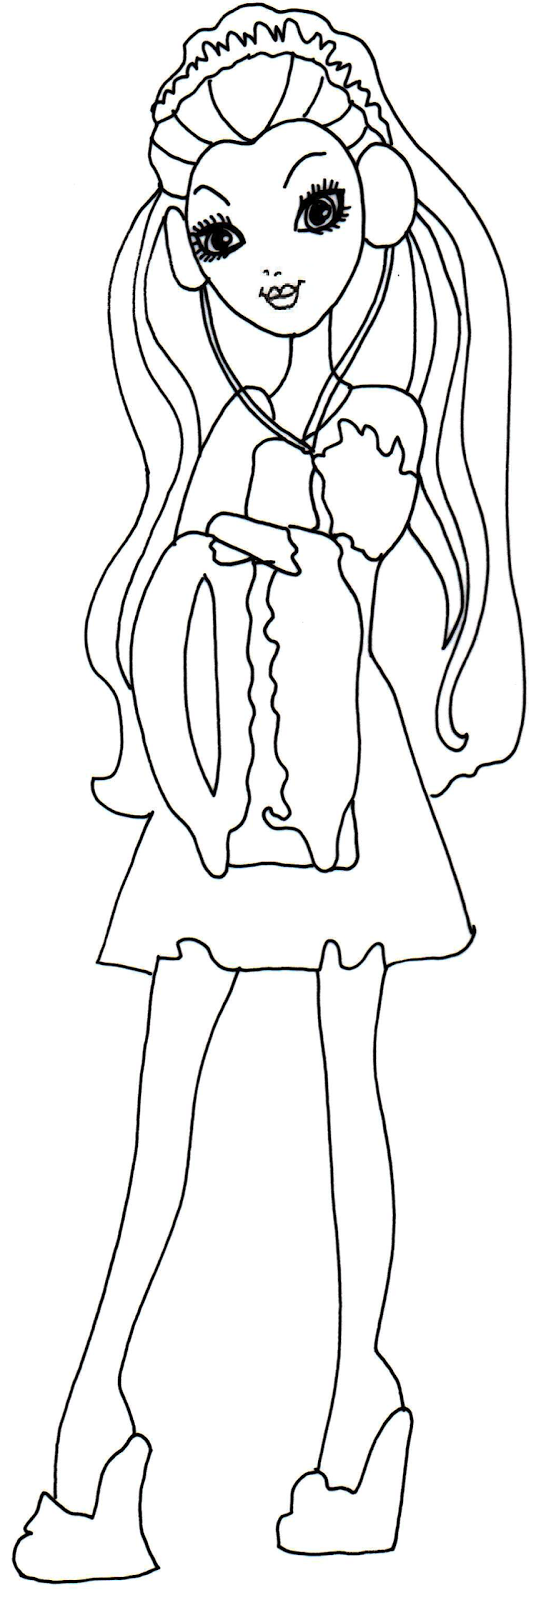 Colouring pages for ever after high -  After High Coloring Page 598x1600 Ever